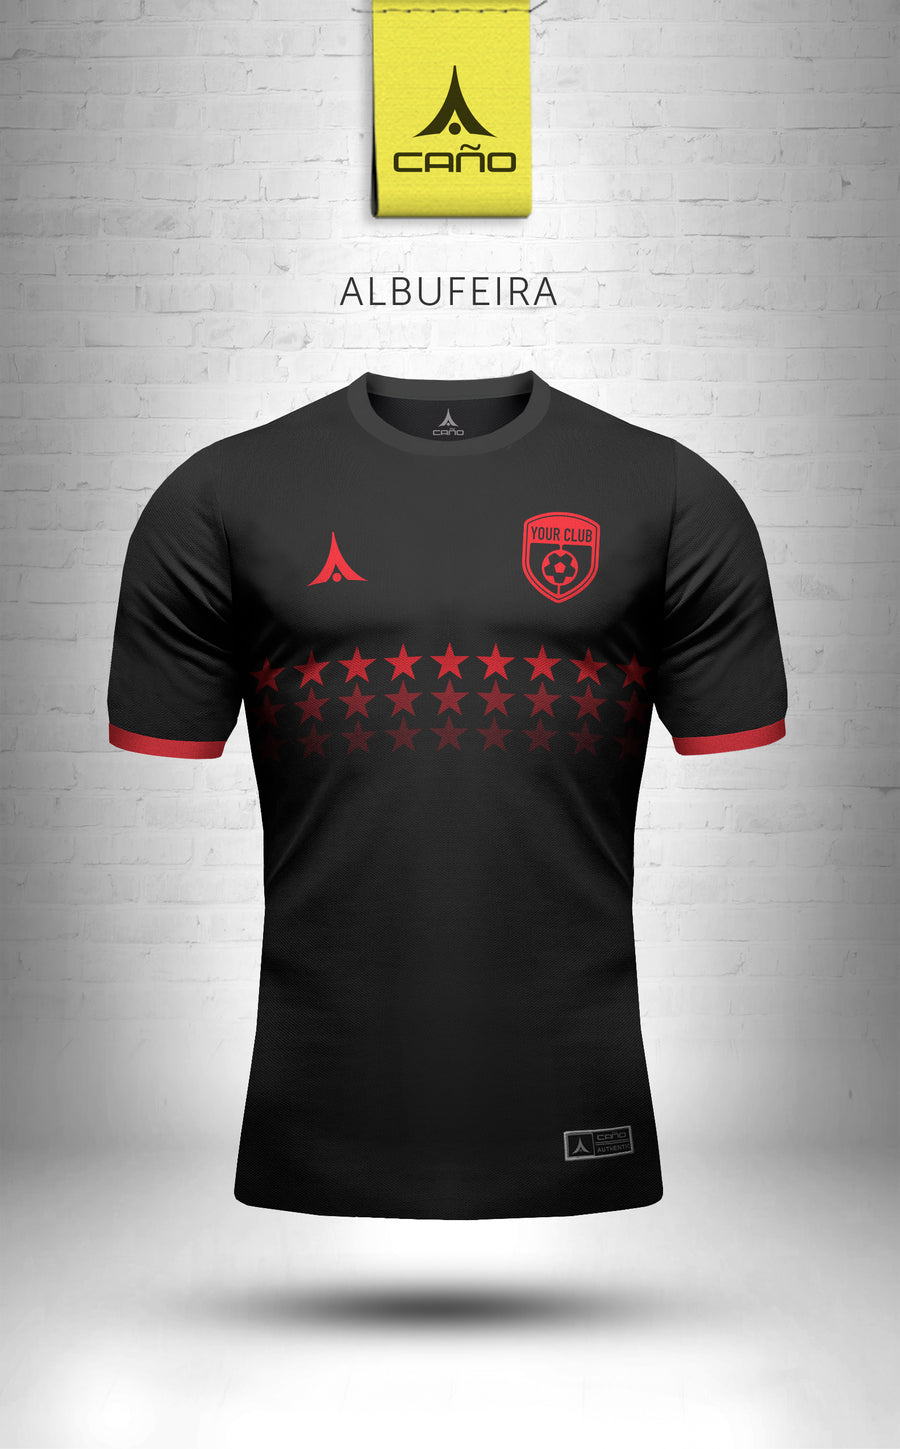 Albufeira in black/red